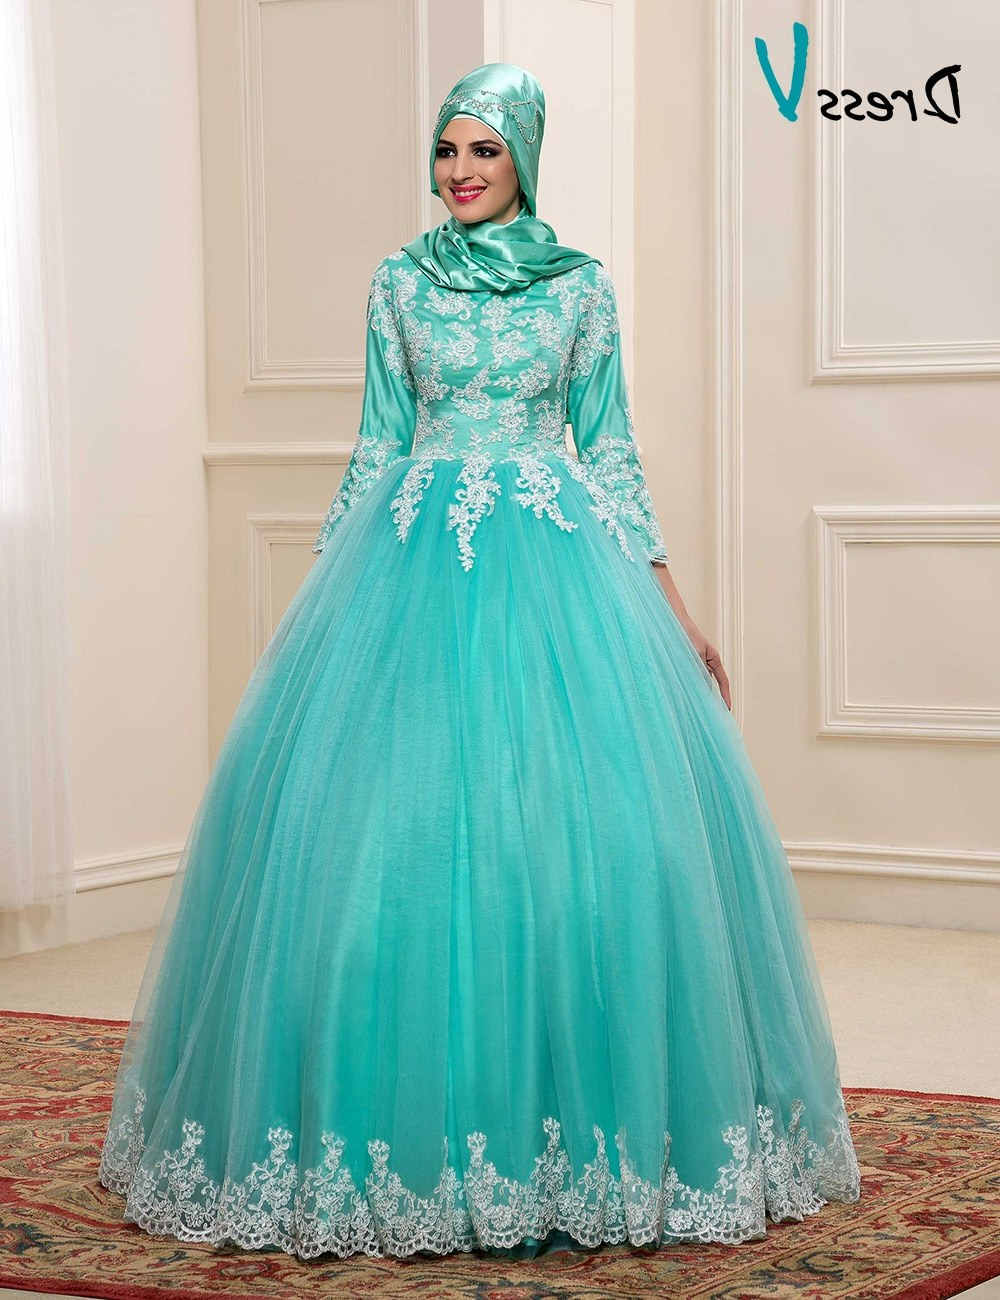 Design Baju Pengantin Muslim Terbaru Gdd0 Bride Dresses Colors – Fashion Dresses